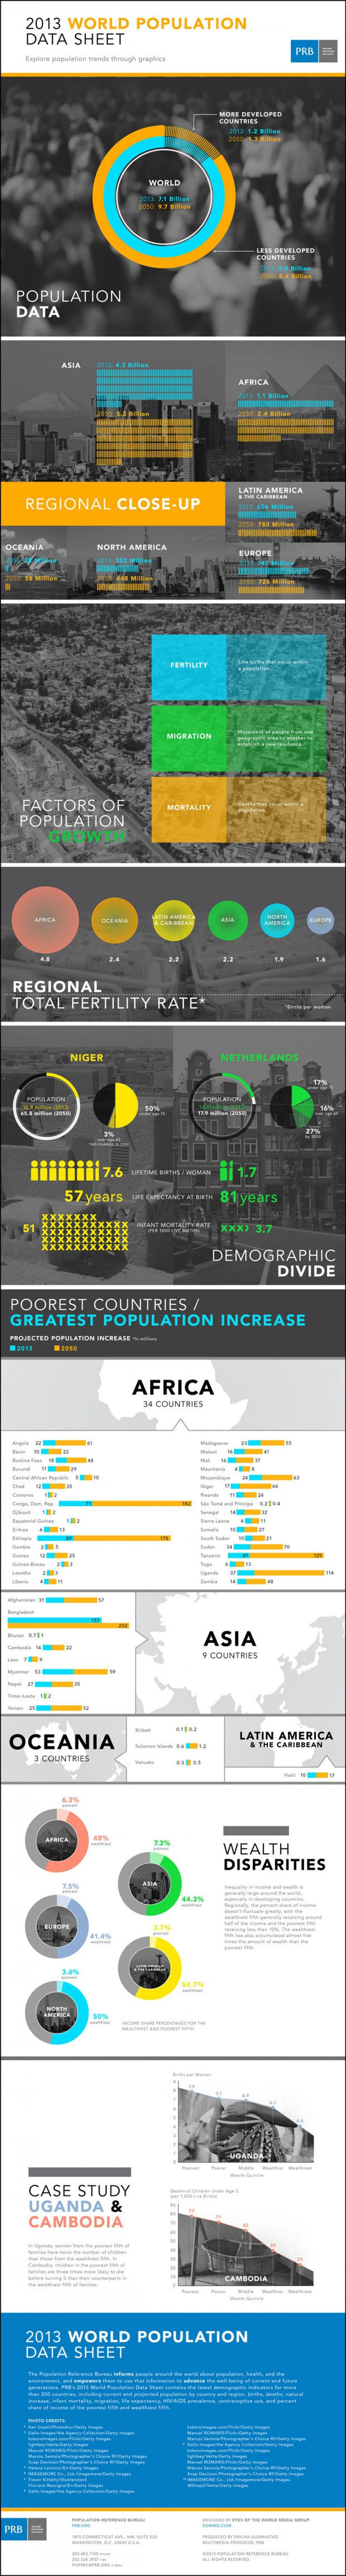 World Population Data Sheet 2013 Infographic